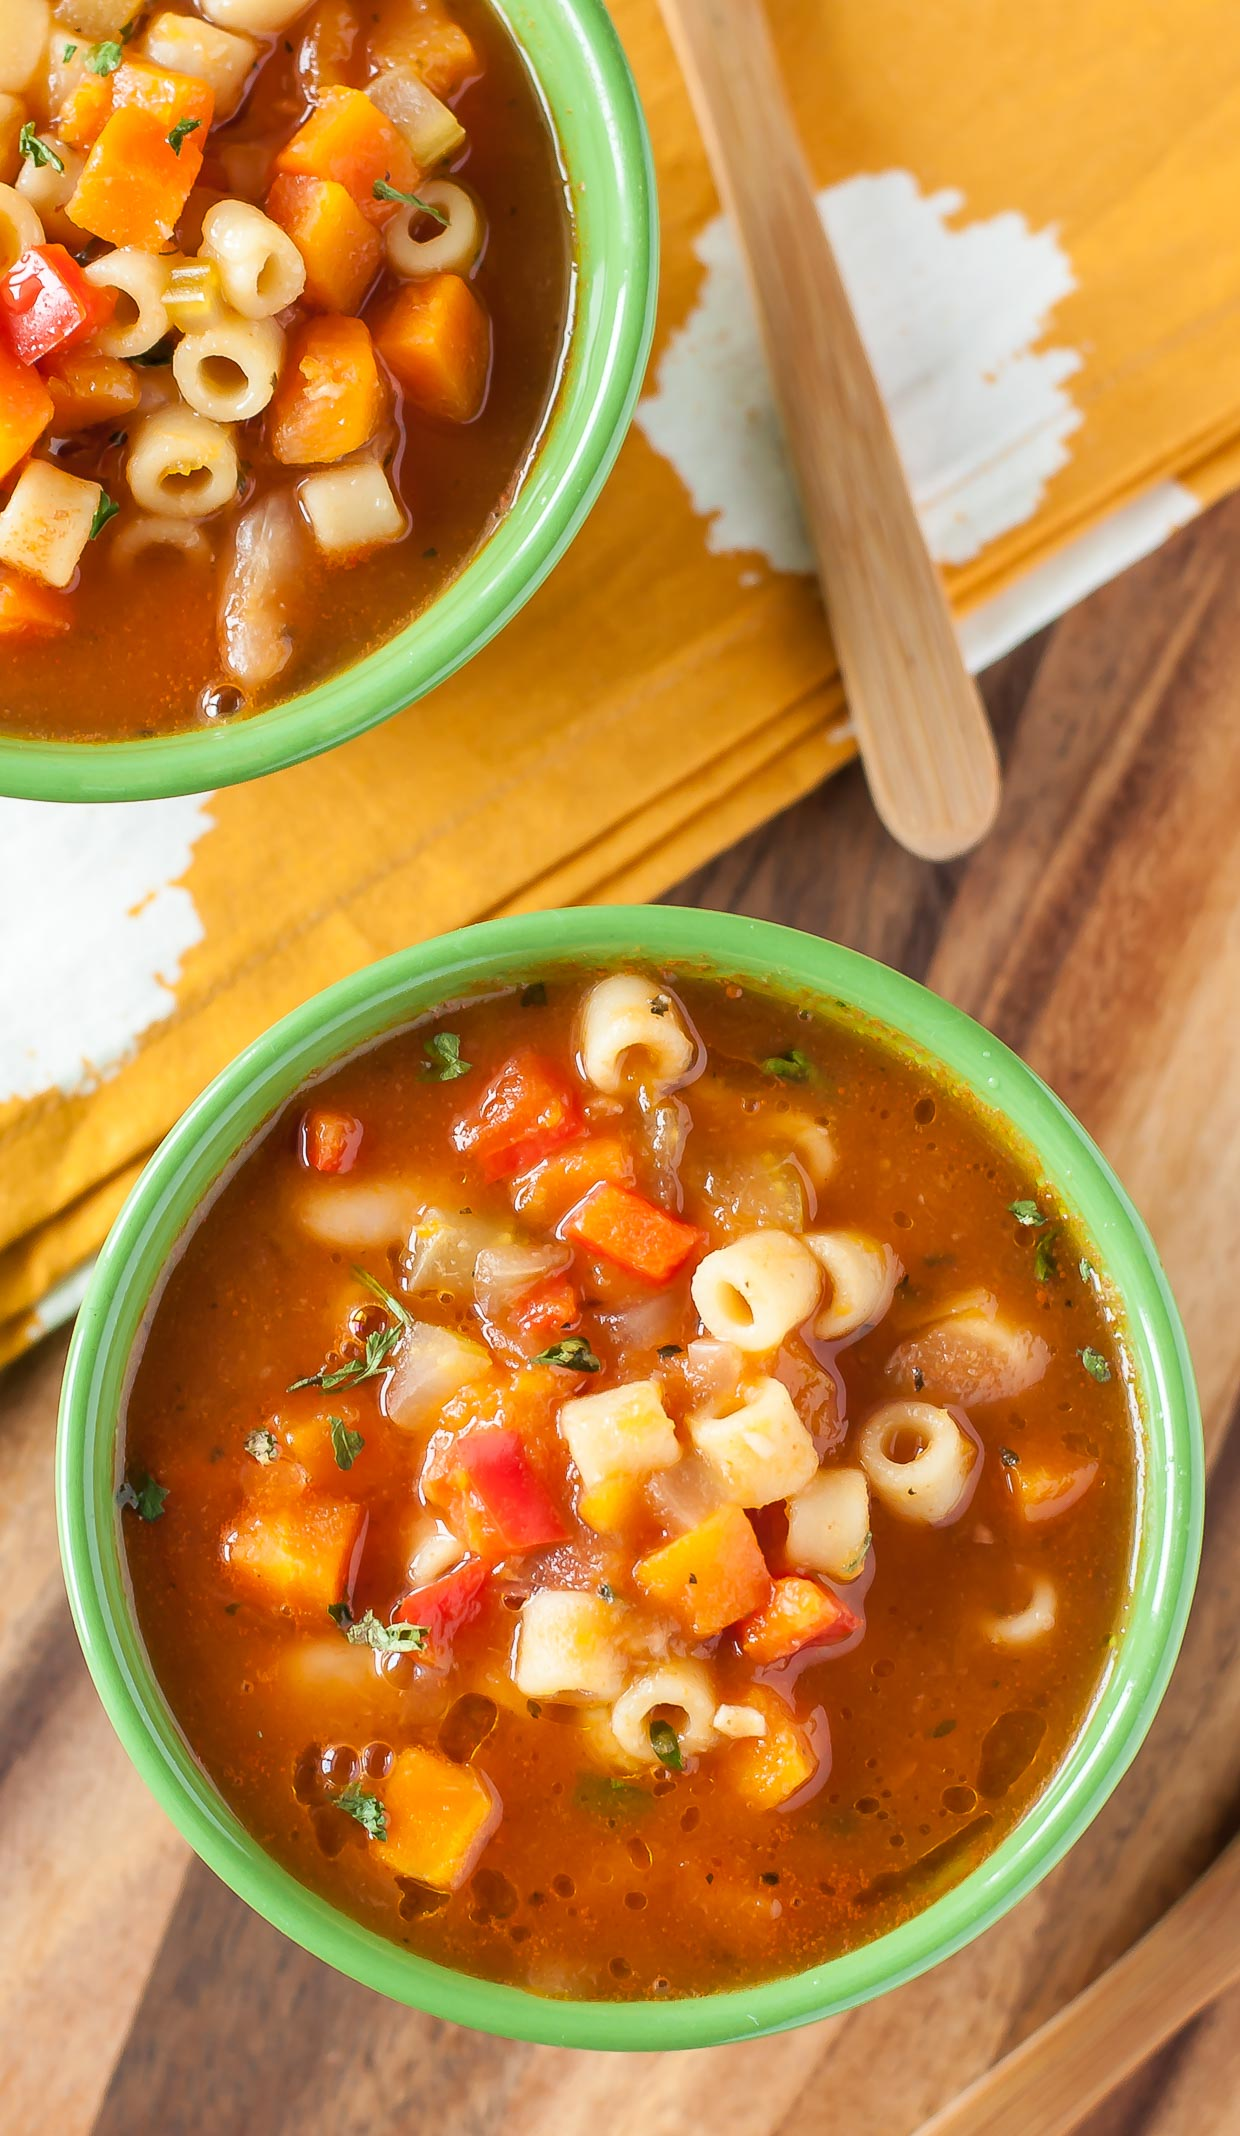 This homemade vegetarian minestrone soup is vegetarian comfort food at it's best!